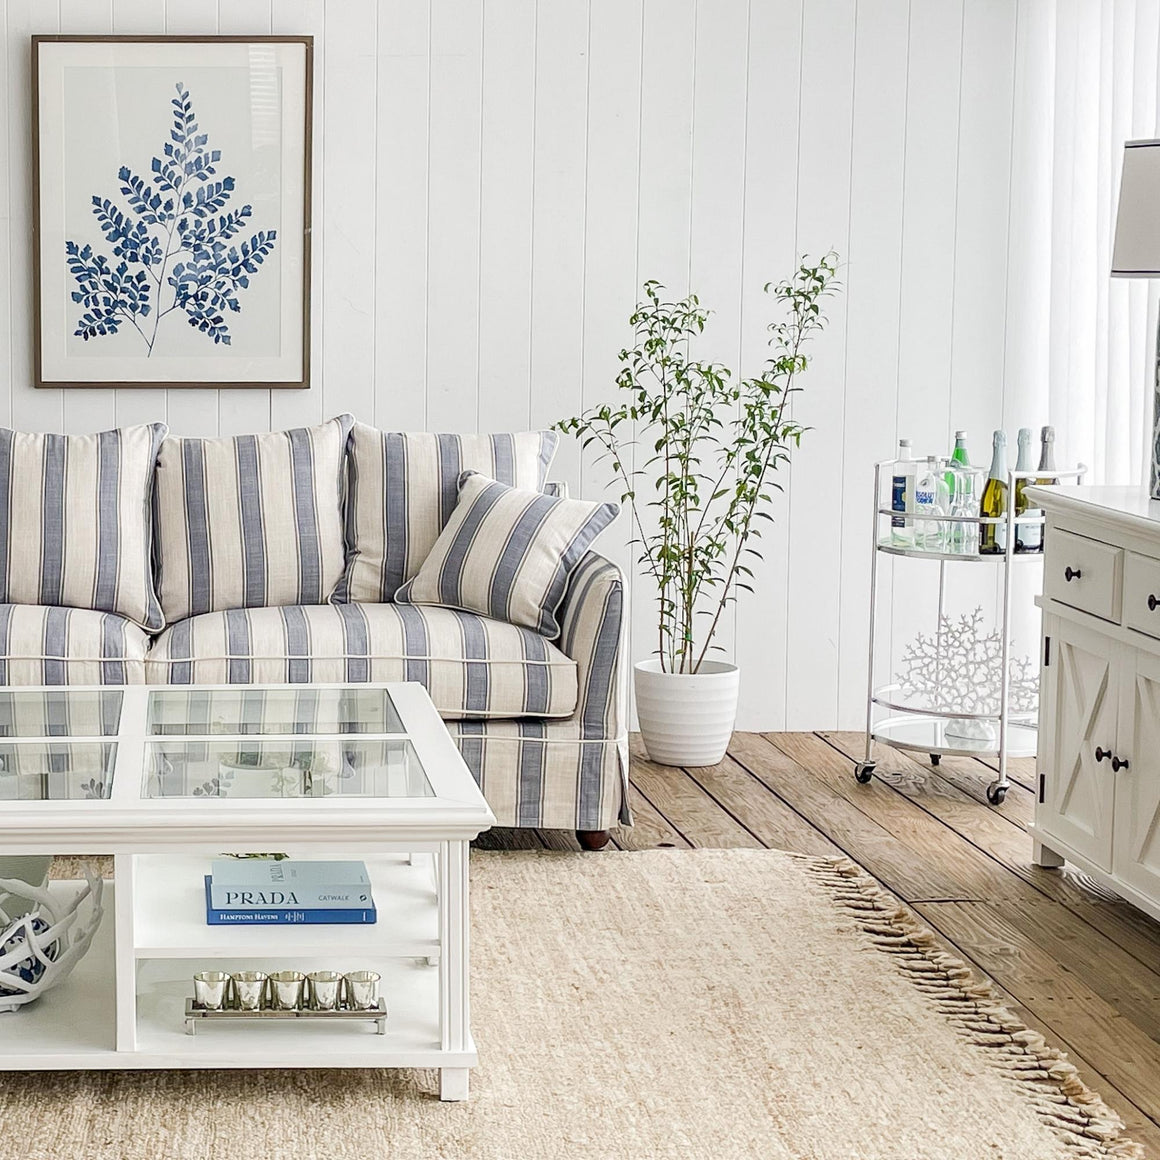 Marcella Round Silver Bar Trolley